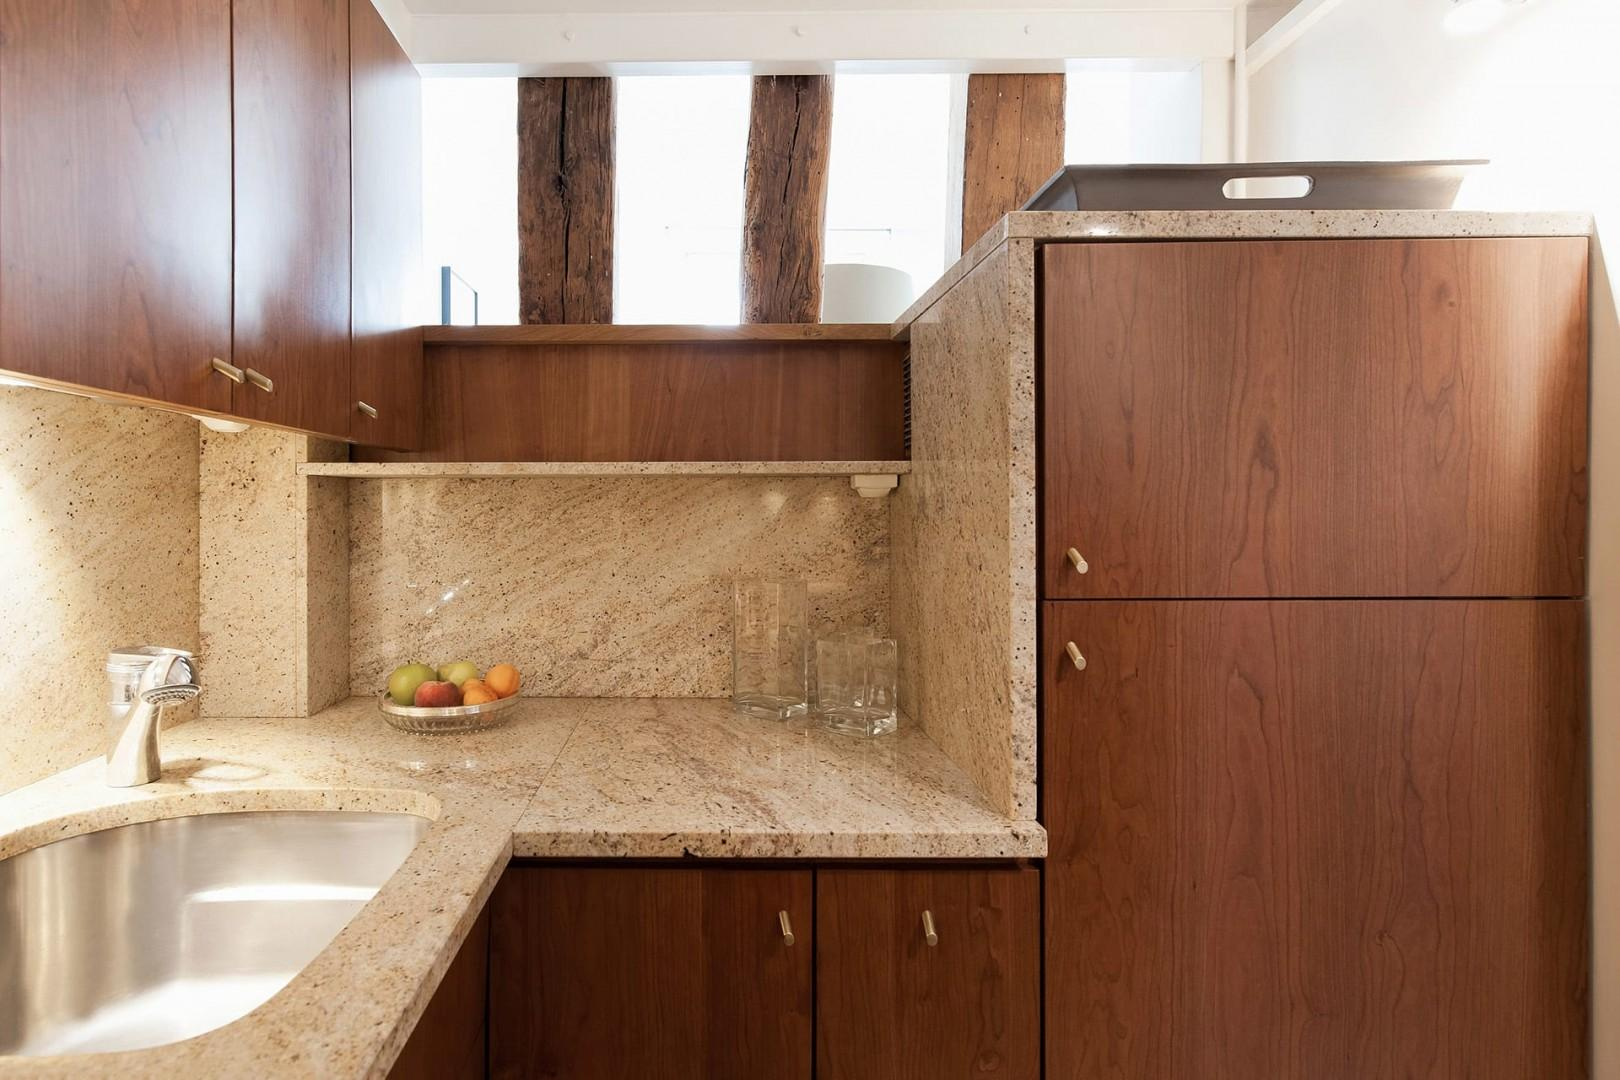 The kitchen can be easily accessed from the living area.